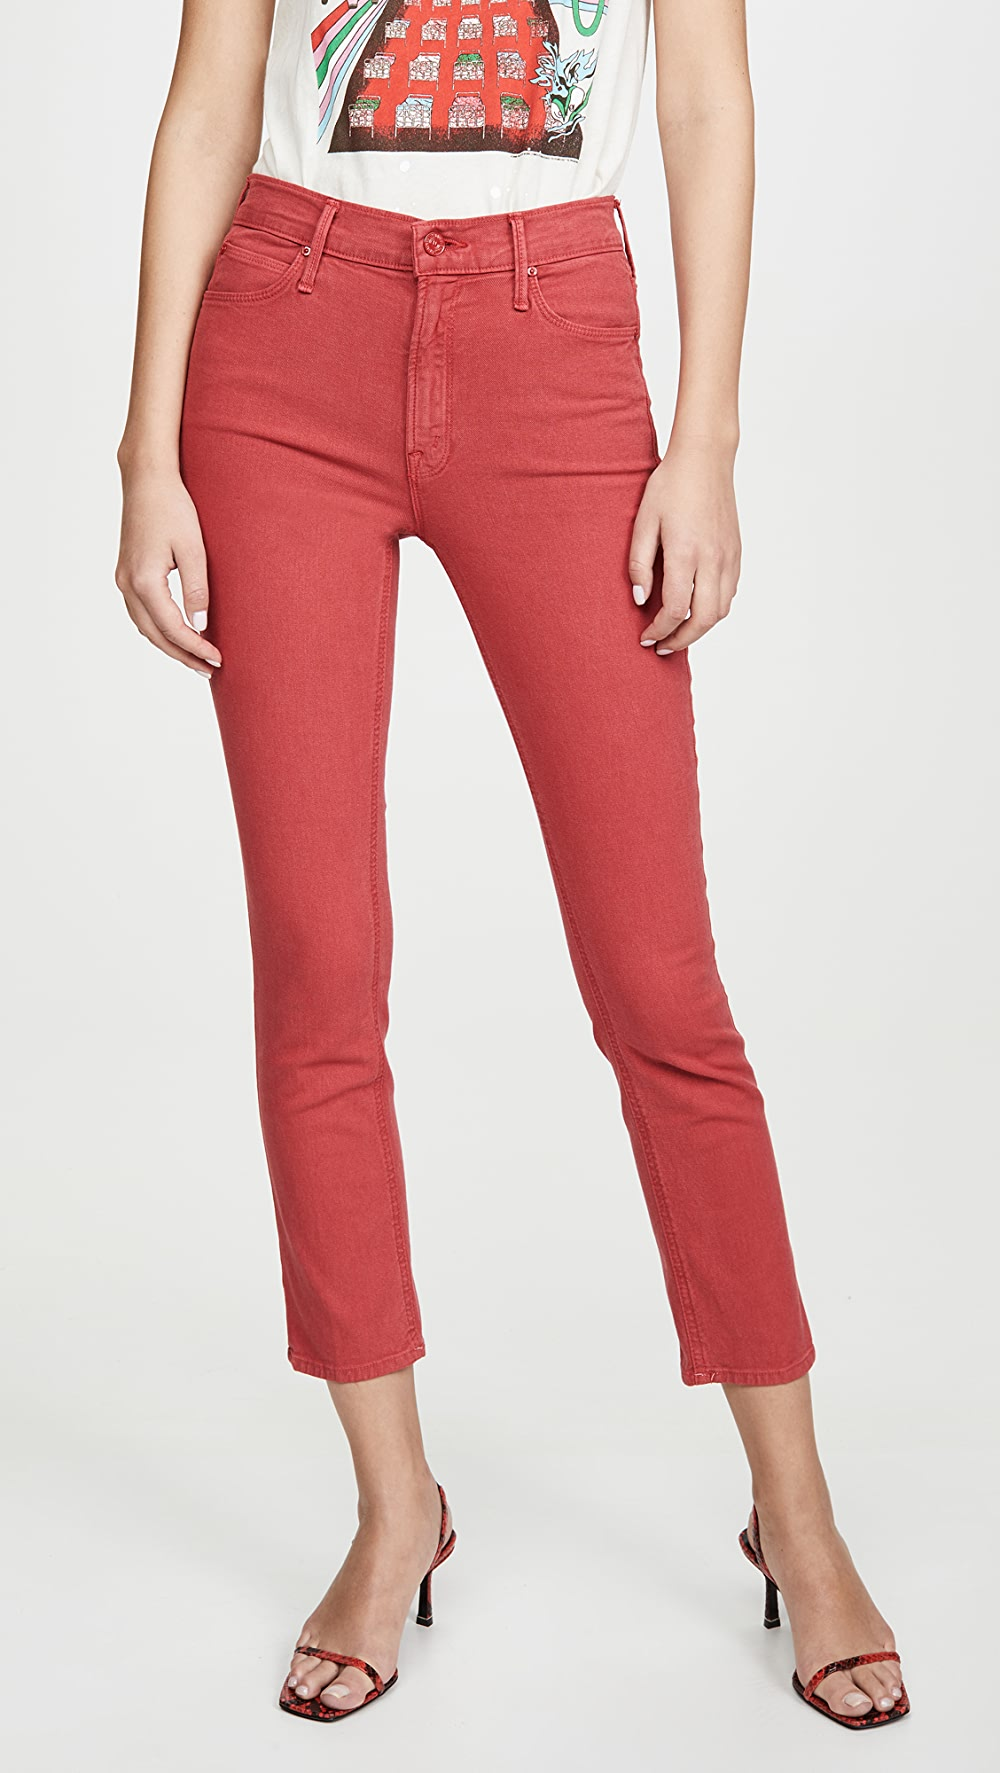 Capable Mother - The Mid Rise Dazzler Ankle Jeans To Win A High Admiration